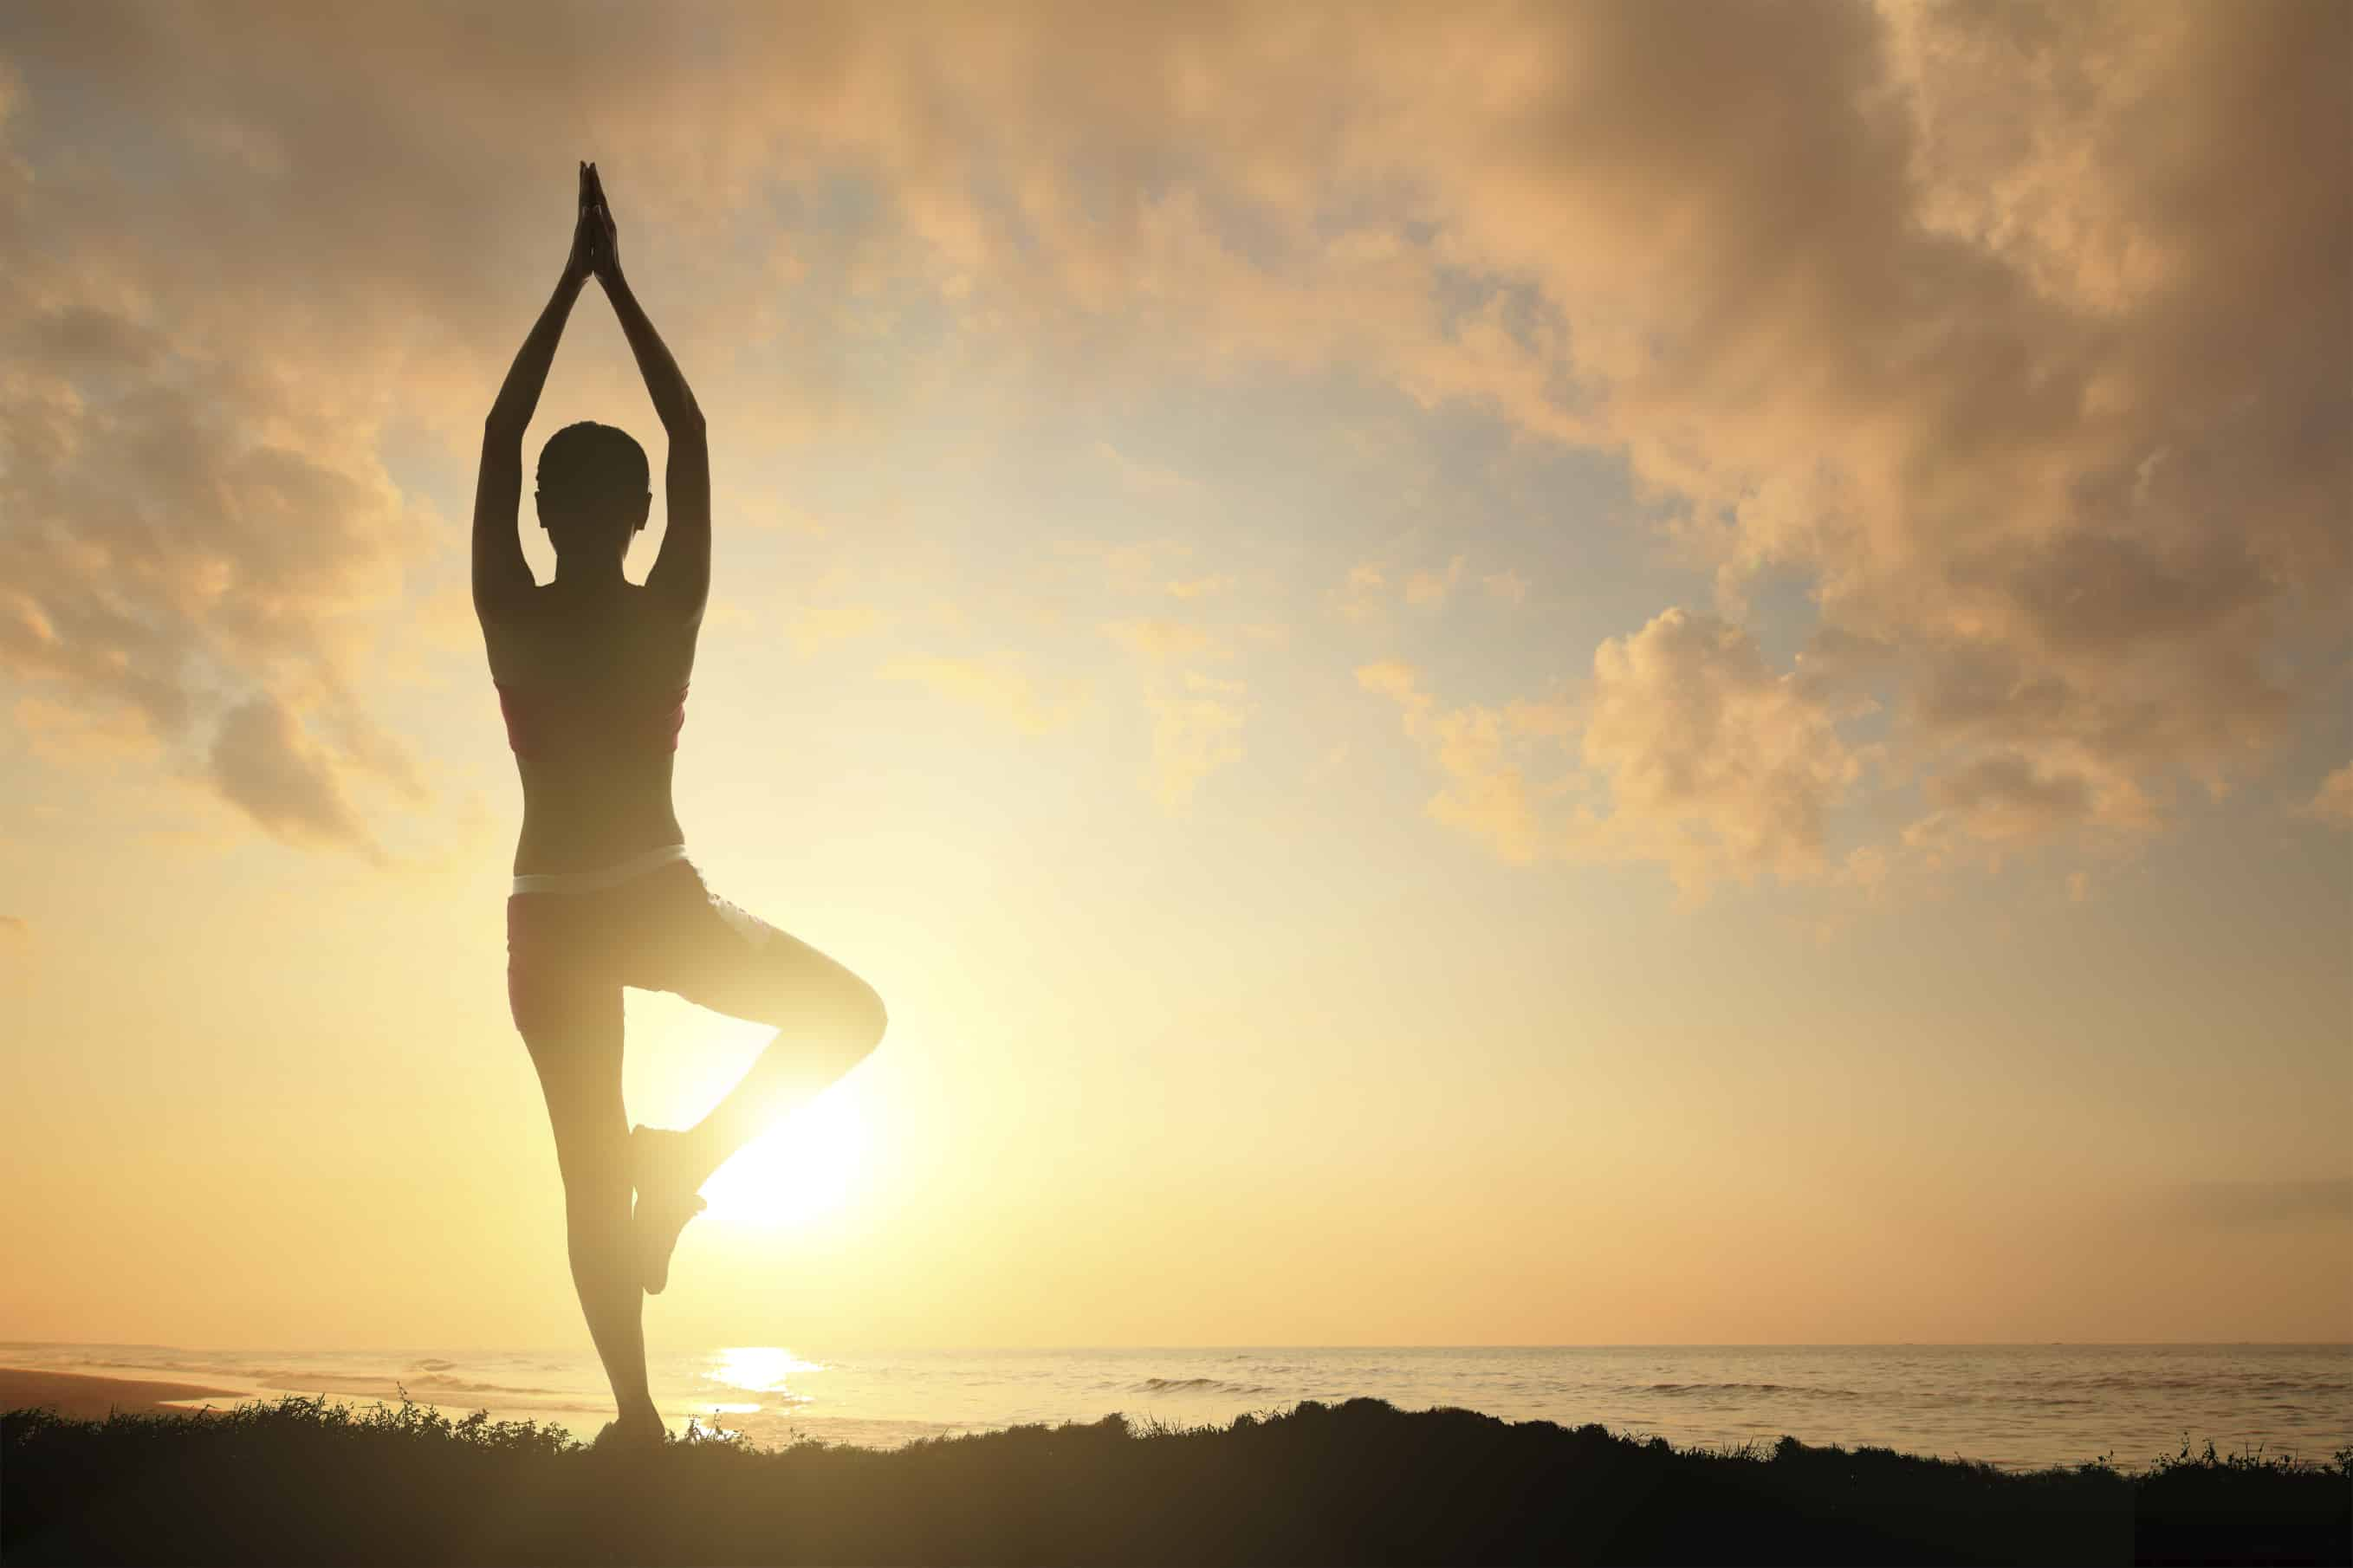 #DYK – June 21st is International Day of Yoga